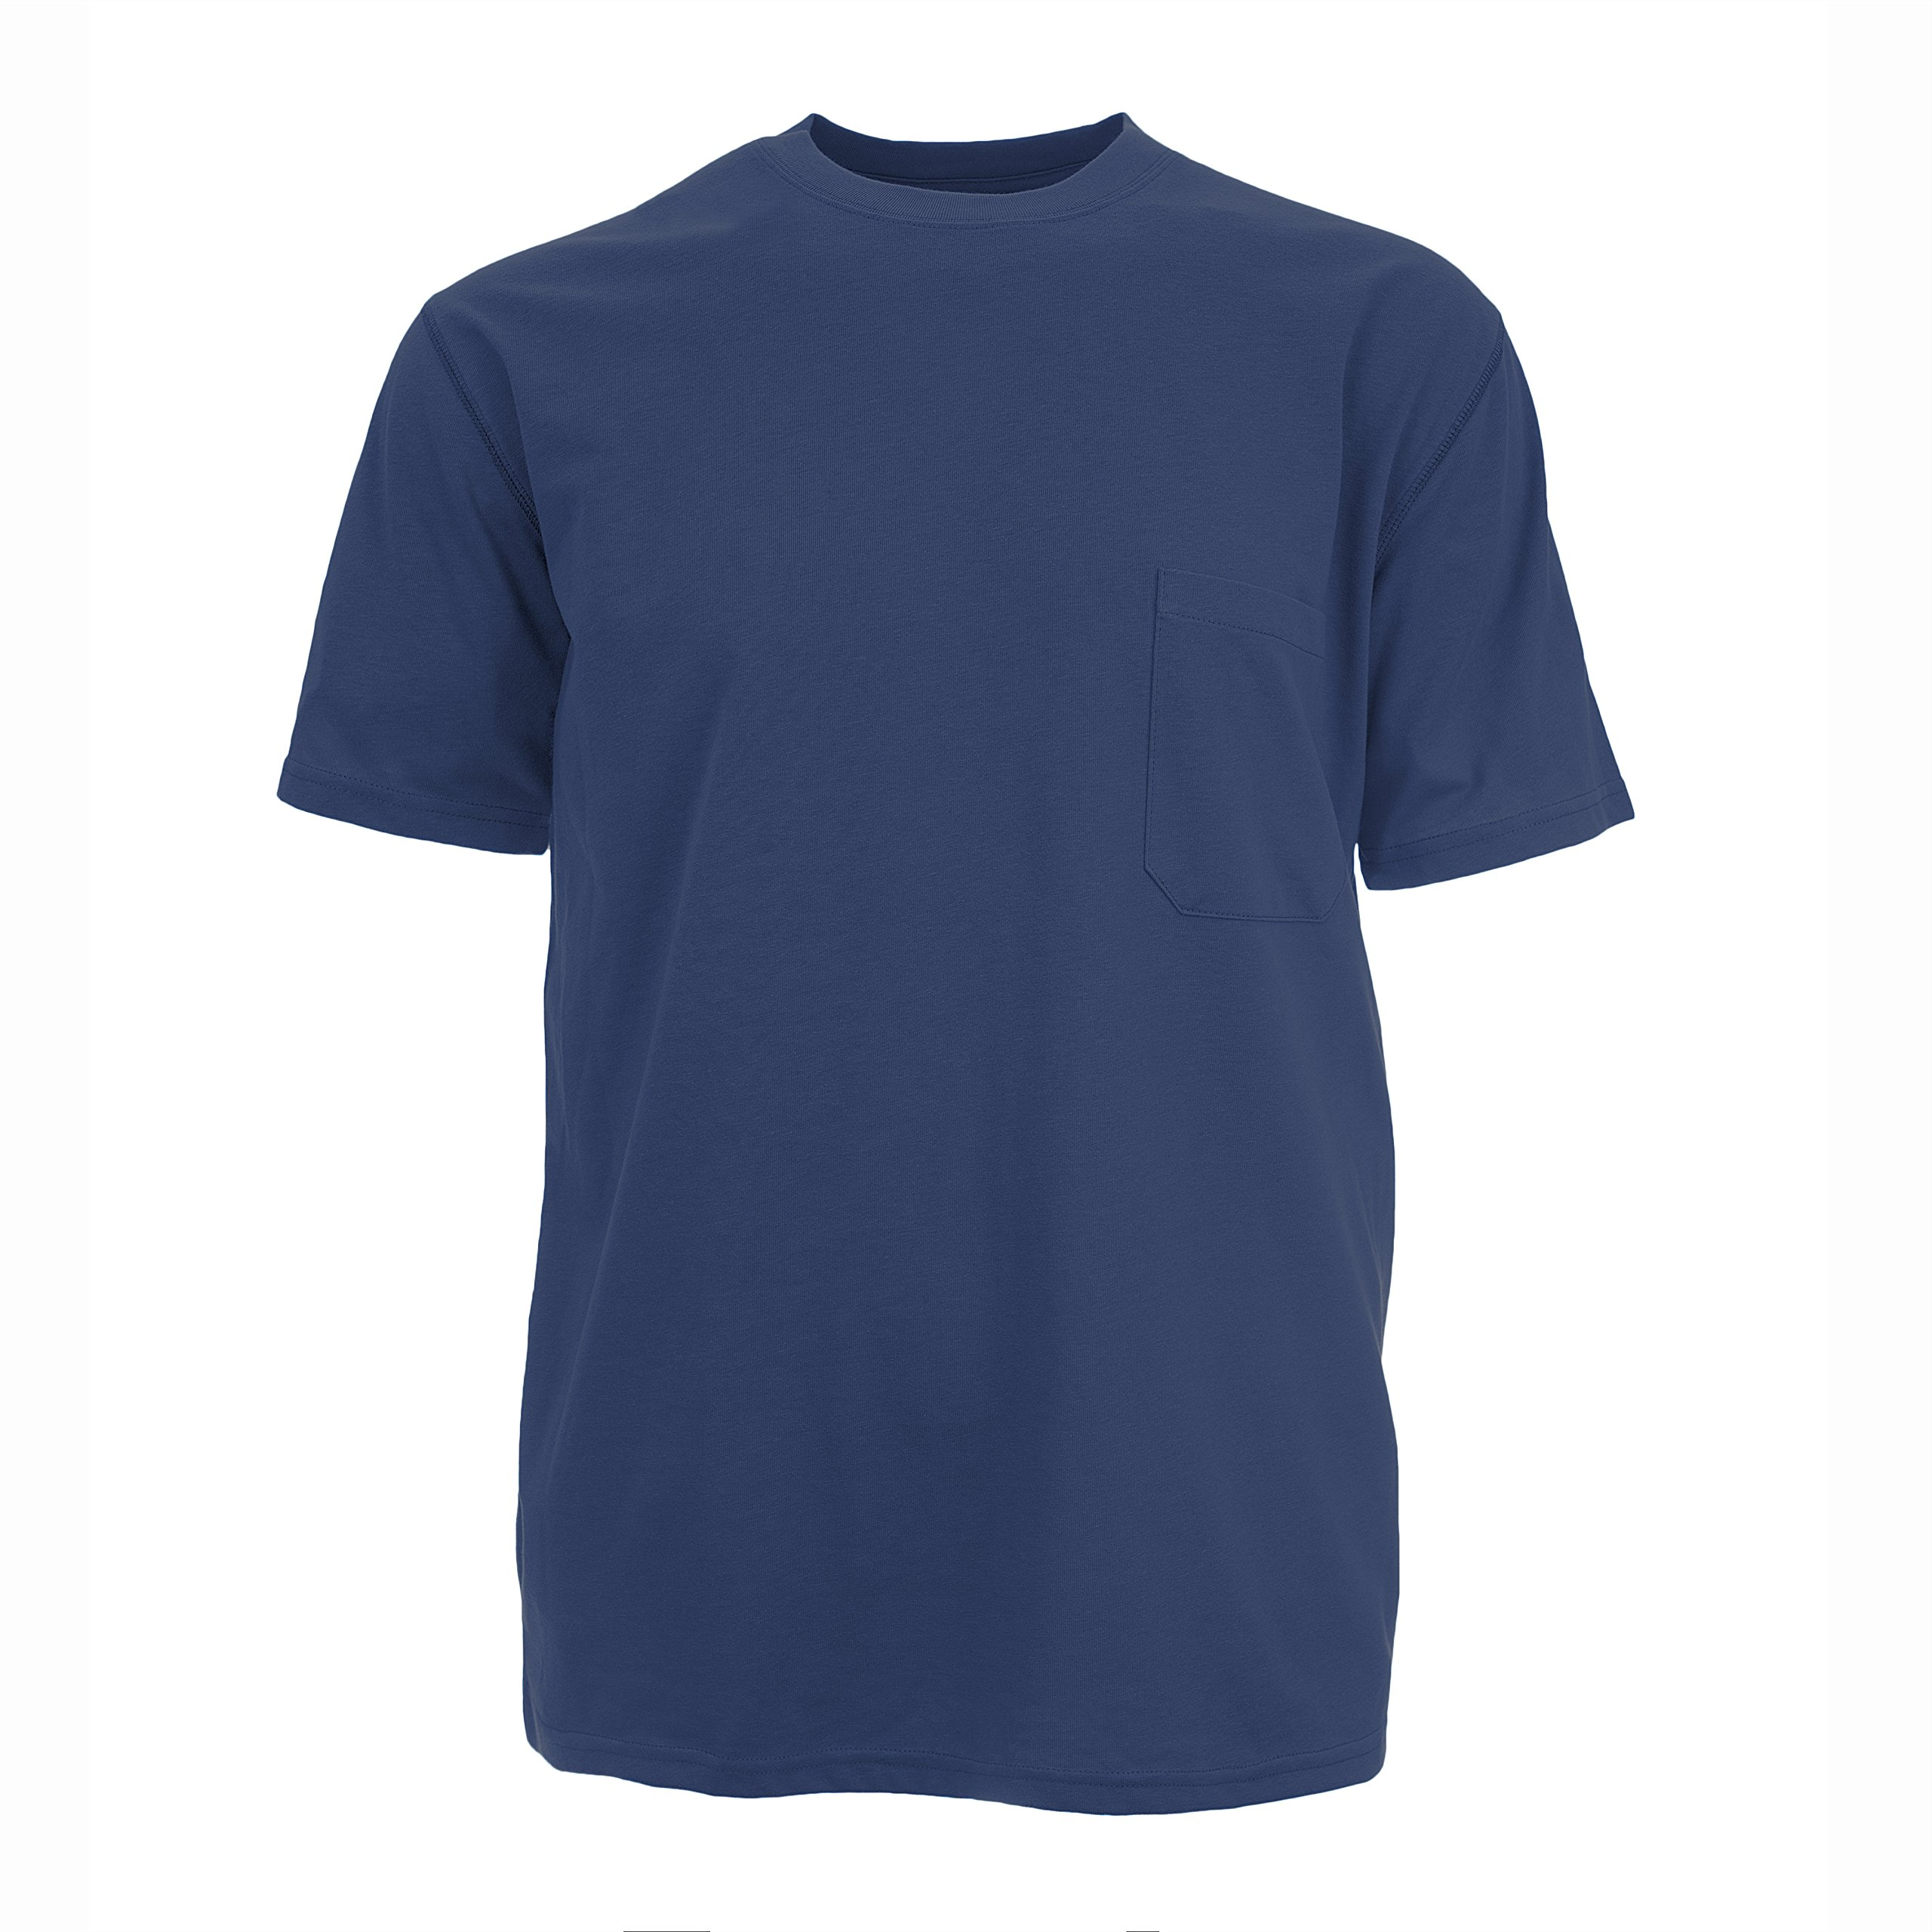 Insect Shield Men's UPF Dri-Balance Short Sleeve Pocket Tee, Navy, X-Large by Insect Shield